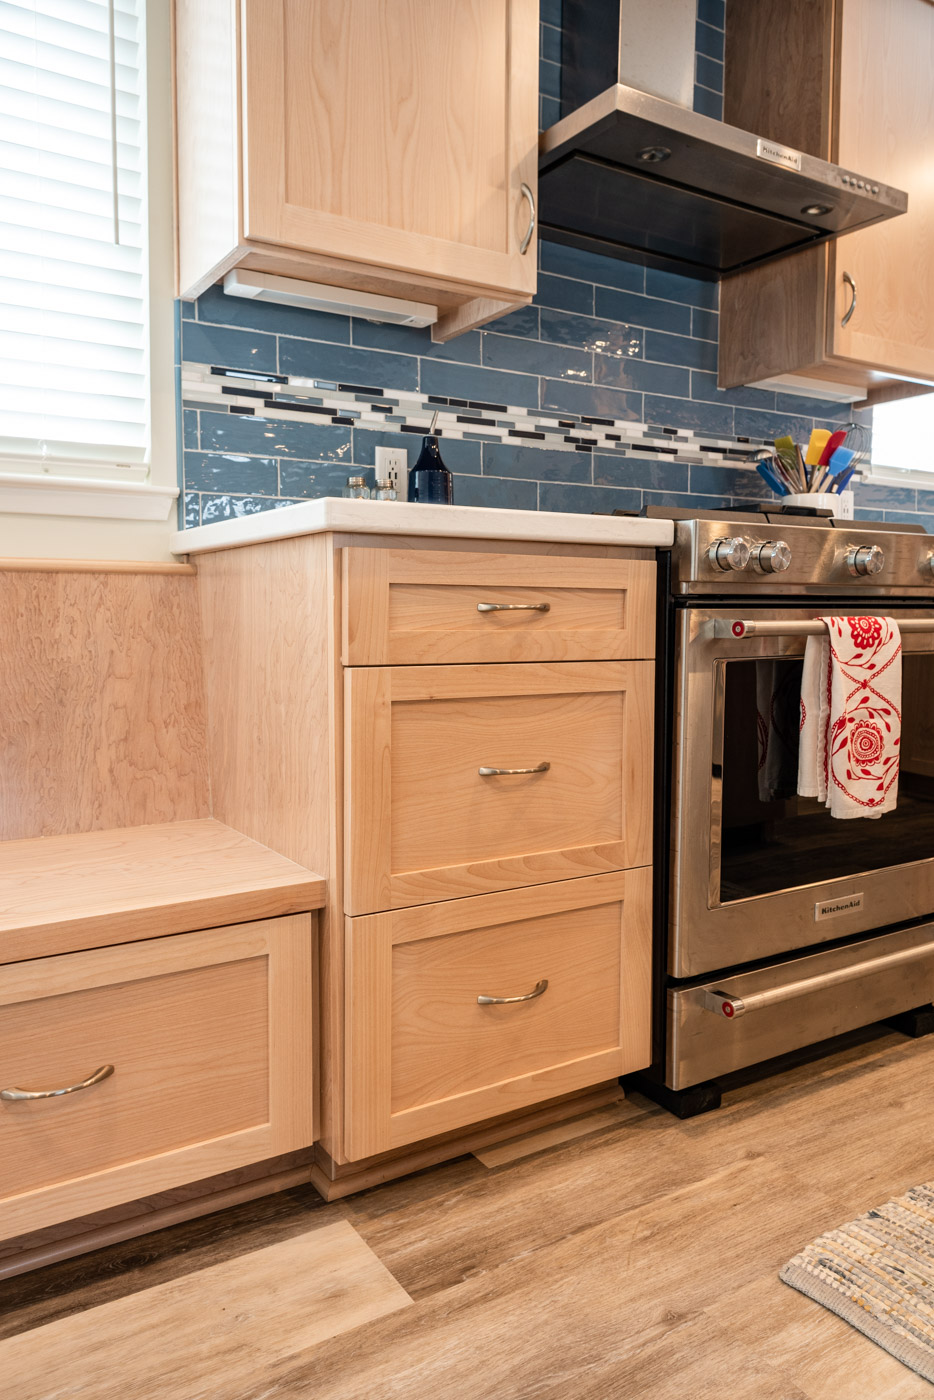 Coastal Contemporary custom kitchen cabinets with natural wood stain and drawer bank